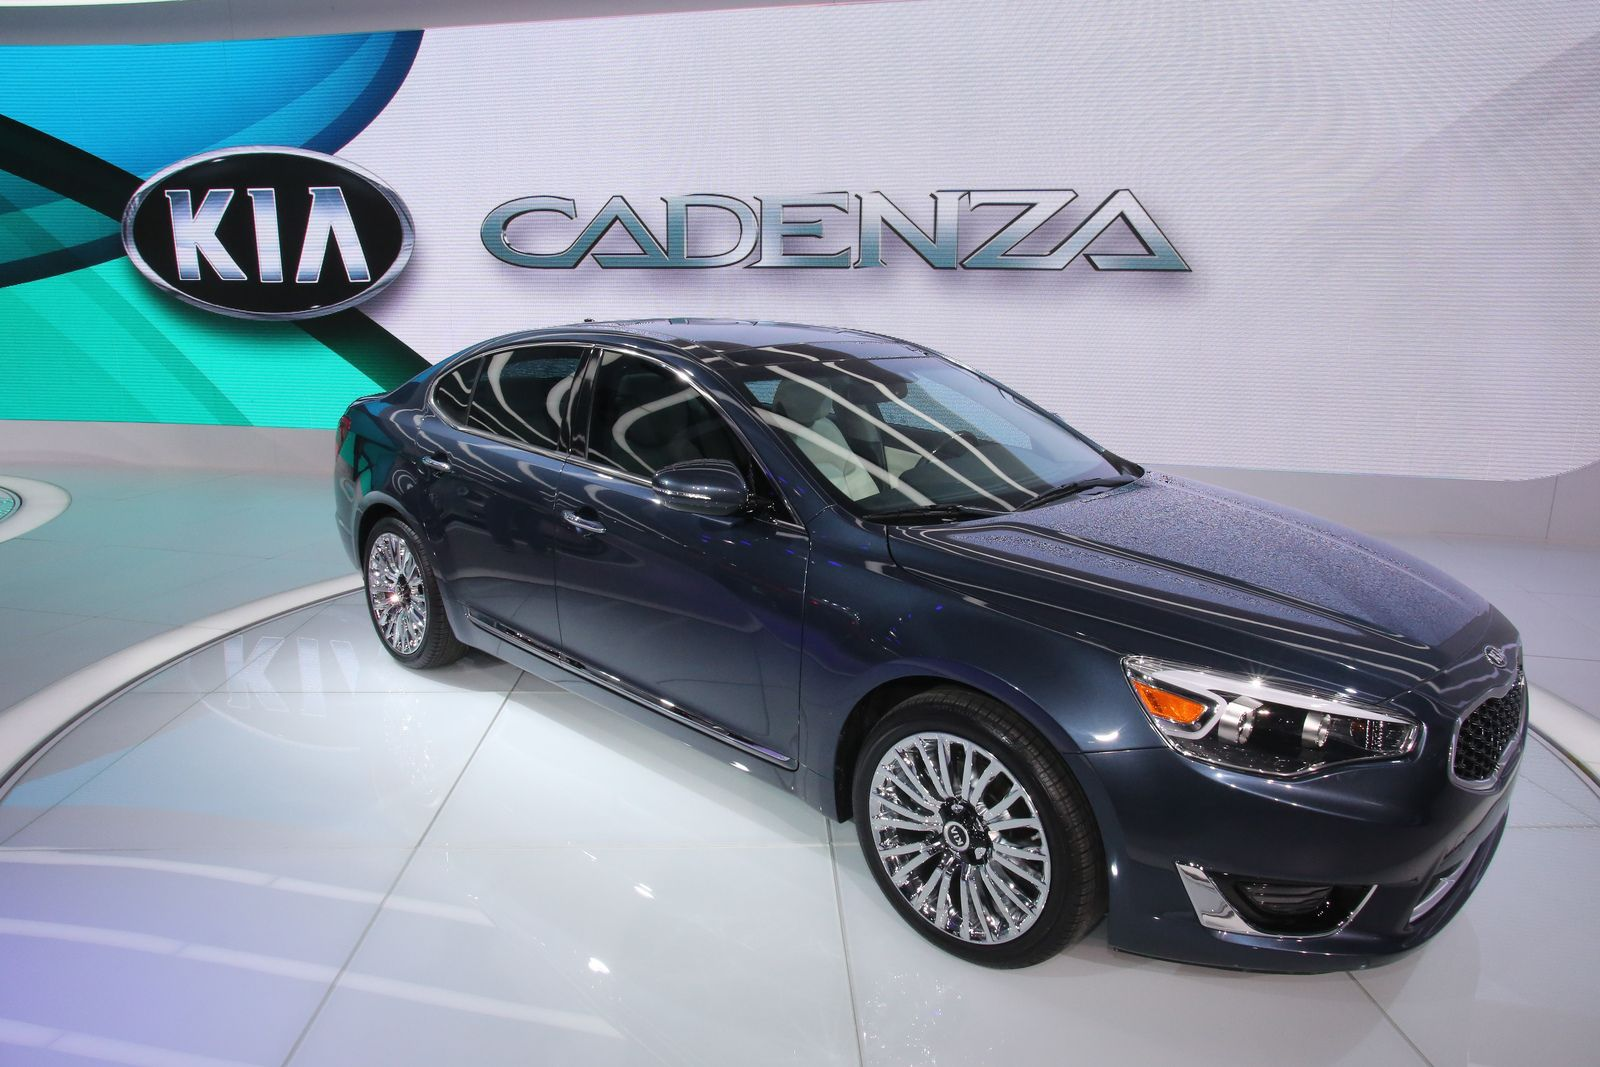 Kia cadenza black oh kia you keep coming up with such great cars